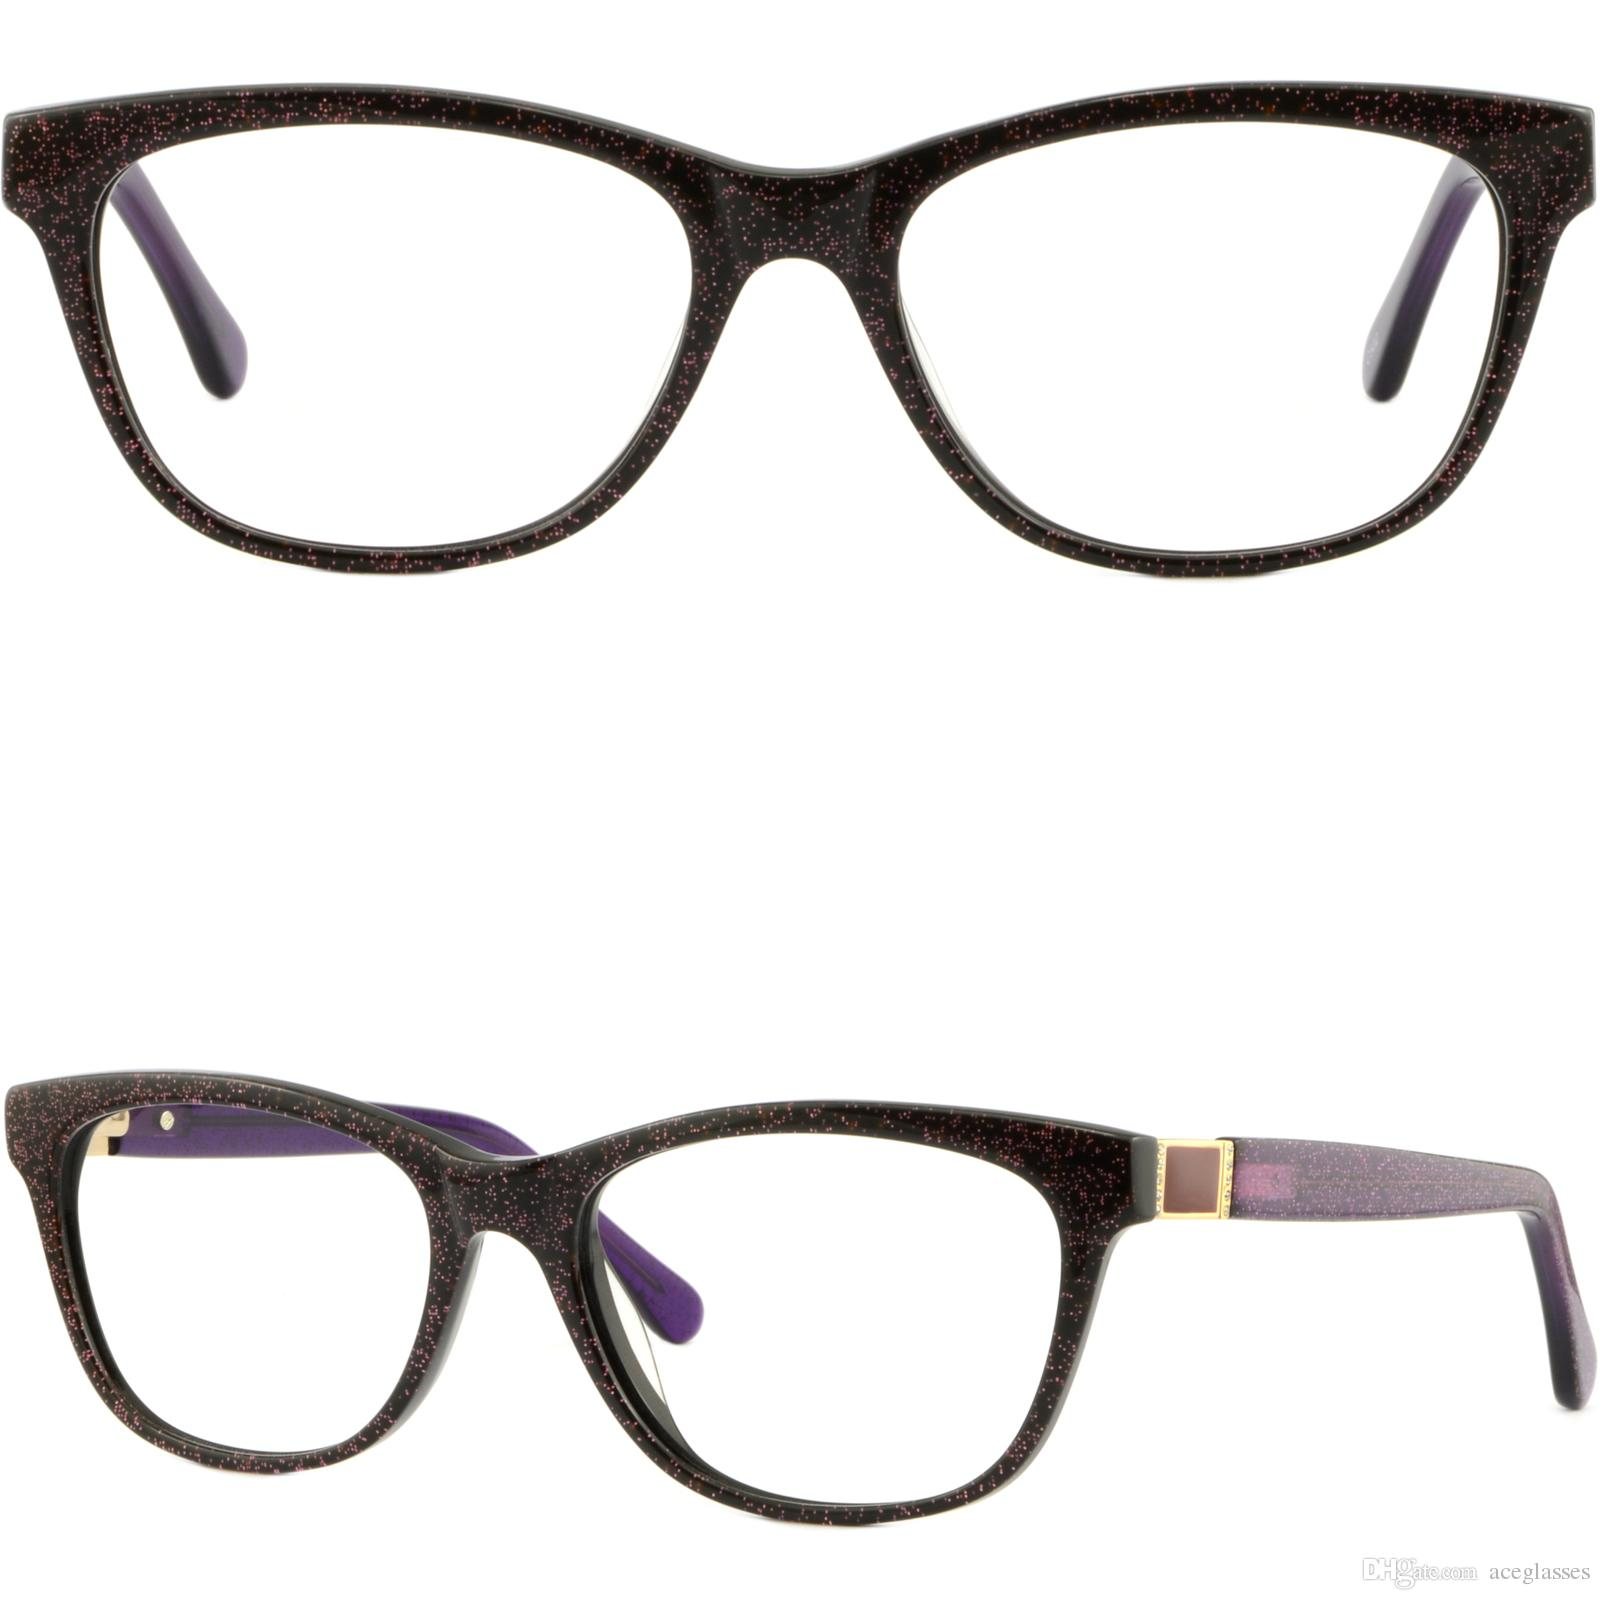 3778fce70e3 Light Womens Plastic Frames Round Thin Acetate Glasses Purple Bling Bling  Brillengestell Fassung Damenbrille Rund Glasses Frame Online with   31.08 Piece on ...